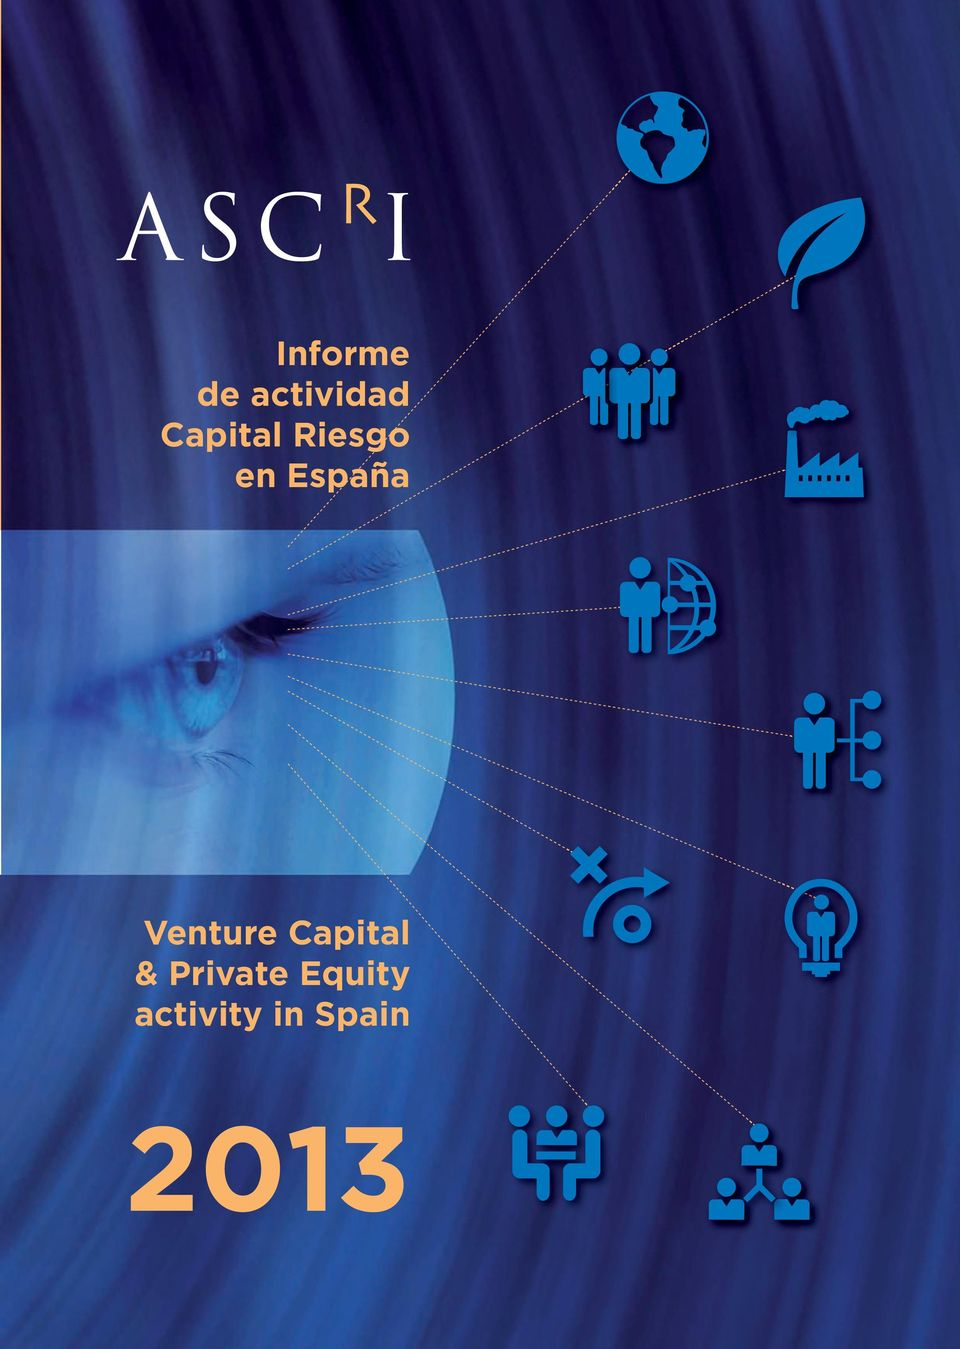 2013 INFORME 2013 Capital Riesgo & Private Equity